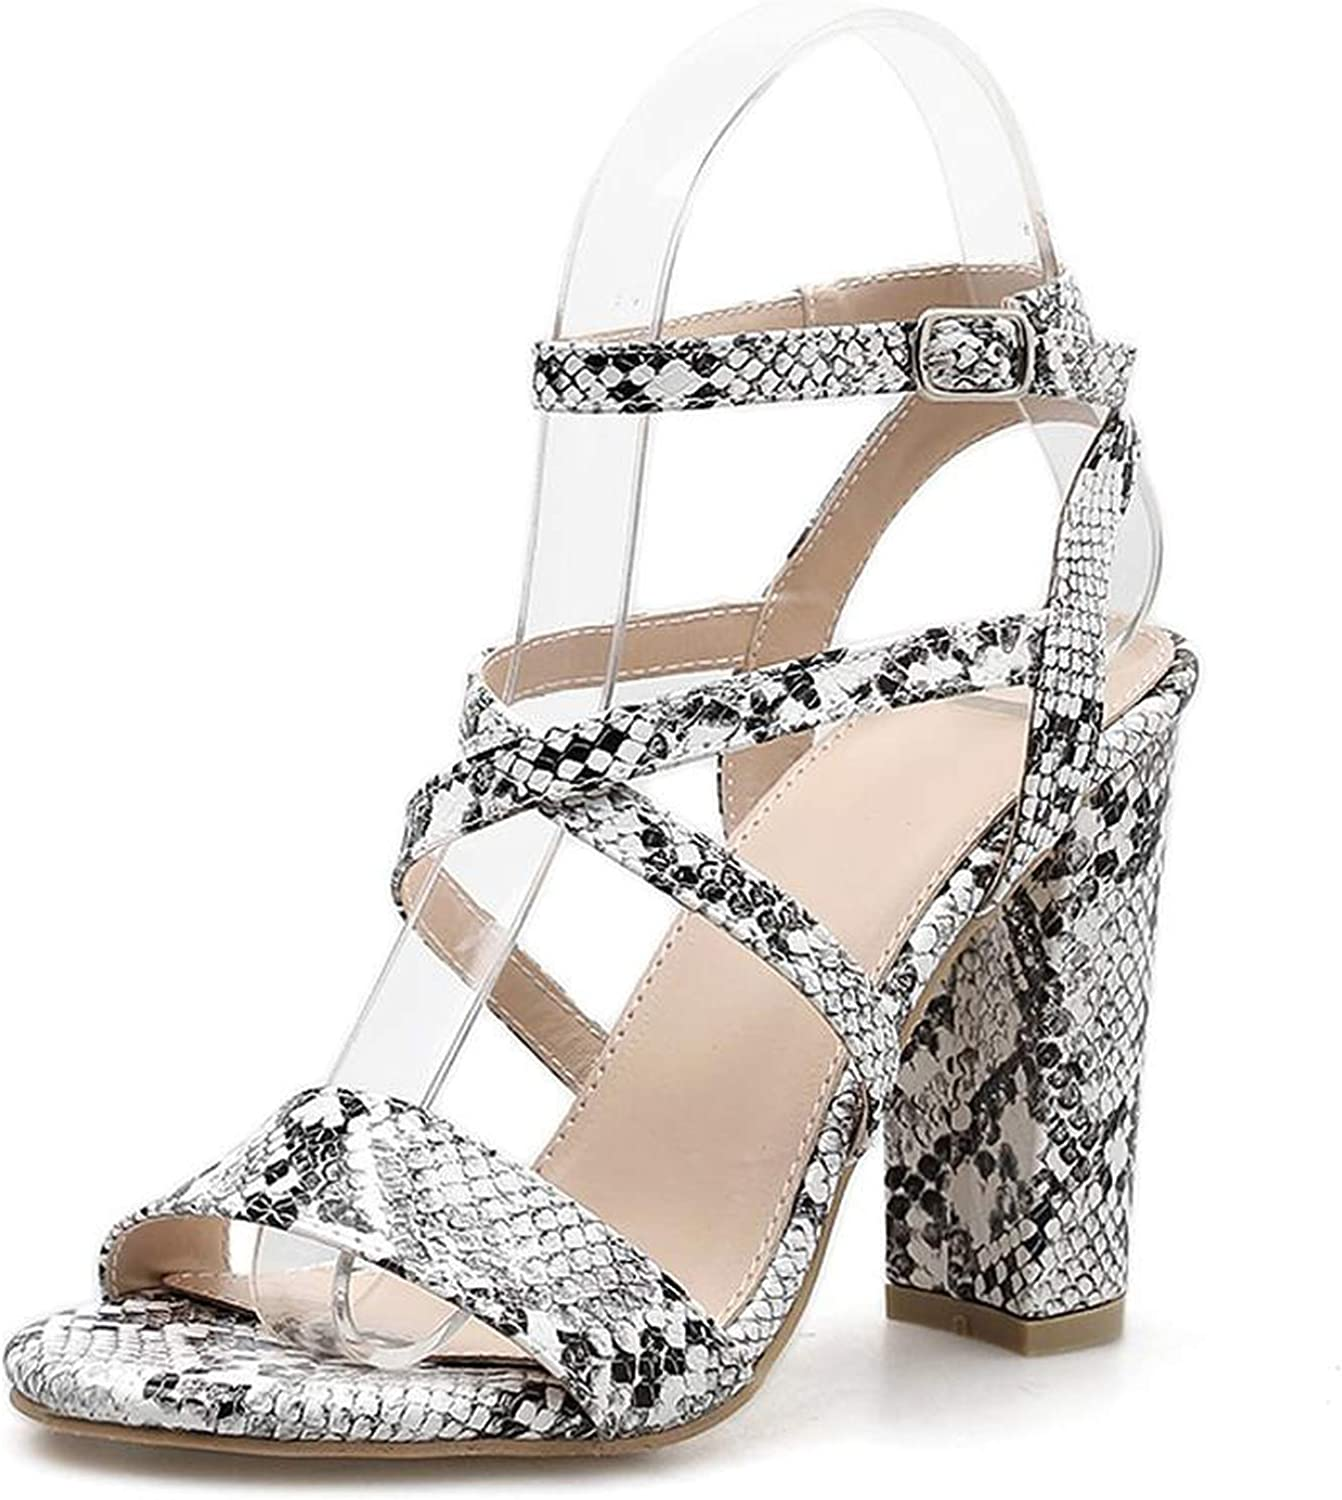 April With You 2019 Serpentine Gladiator Sandals High Heels Fashion Women Open Toe Cross-Tied Sandals Size 35-40